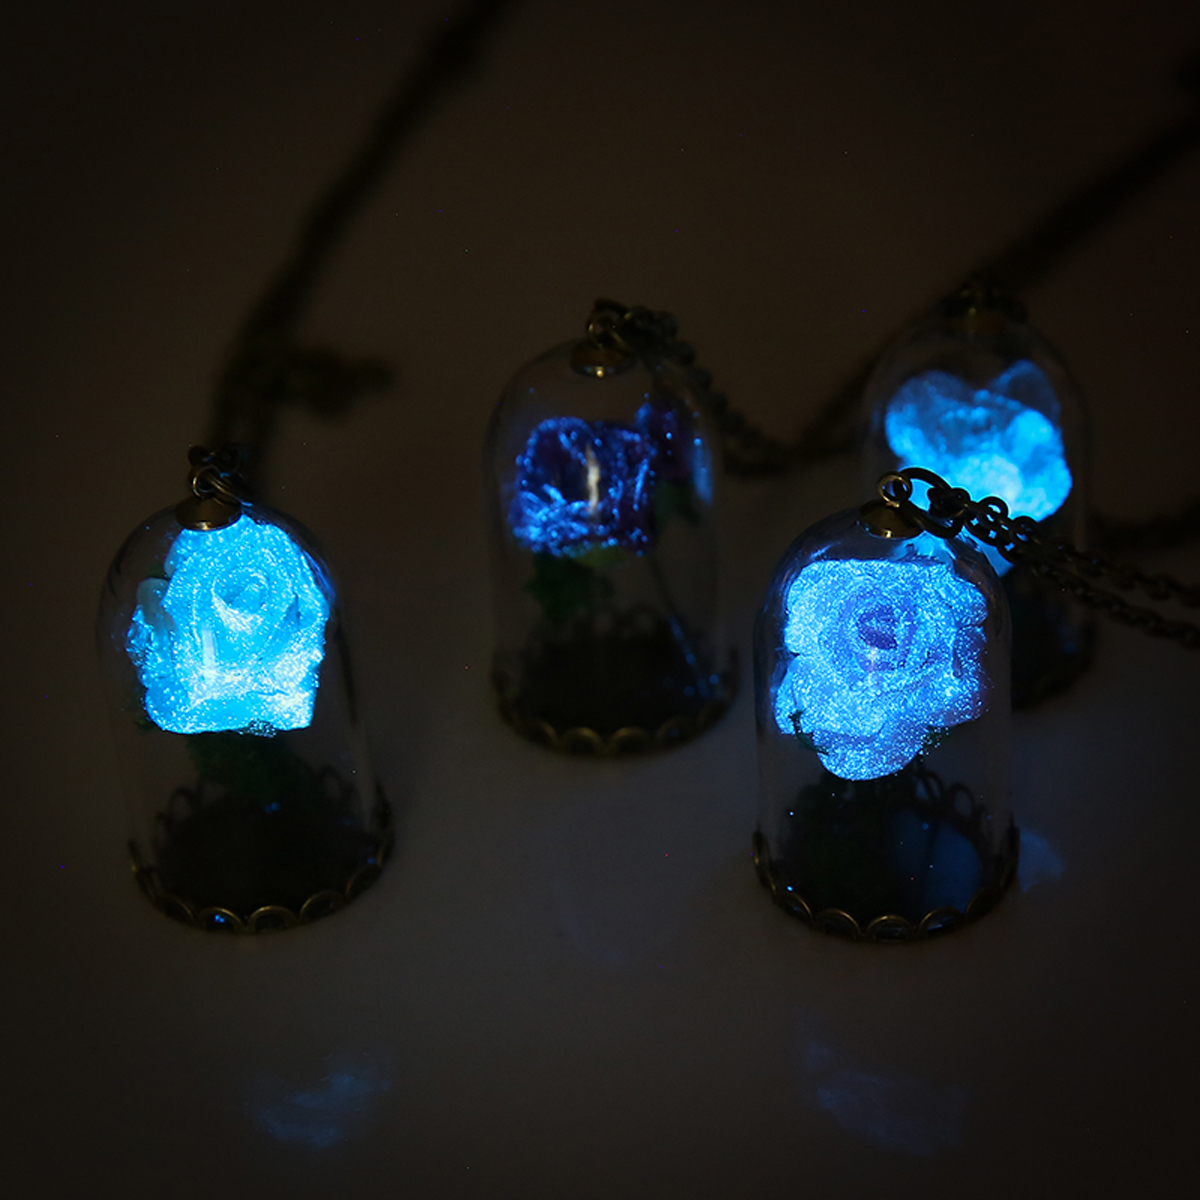 Vintage Glow In The Dark Jewelry Luminous Flower Pendant Necklace Glass Wishing Bottle Chain Long Statement Necklace Jewelry